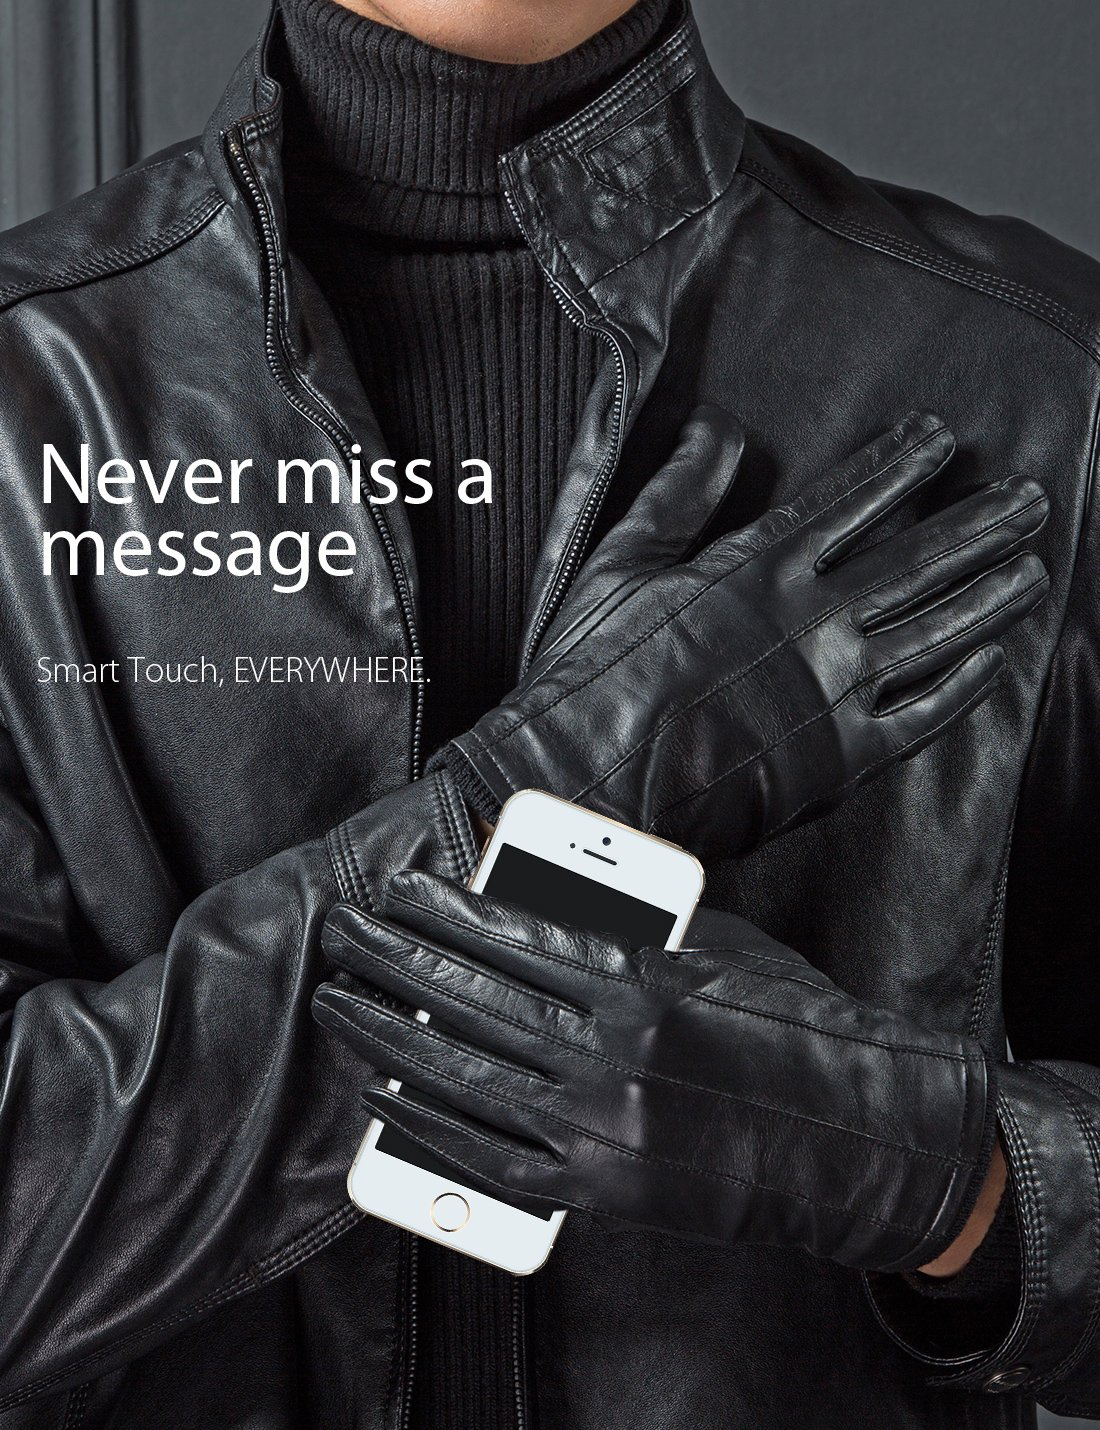 YISEVEN Men's Genuine Nappa Leather Lined Winter Gloves -Black/Touchscreen,Black,11'' by YISEVEN (Image #3)